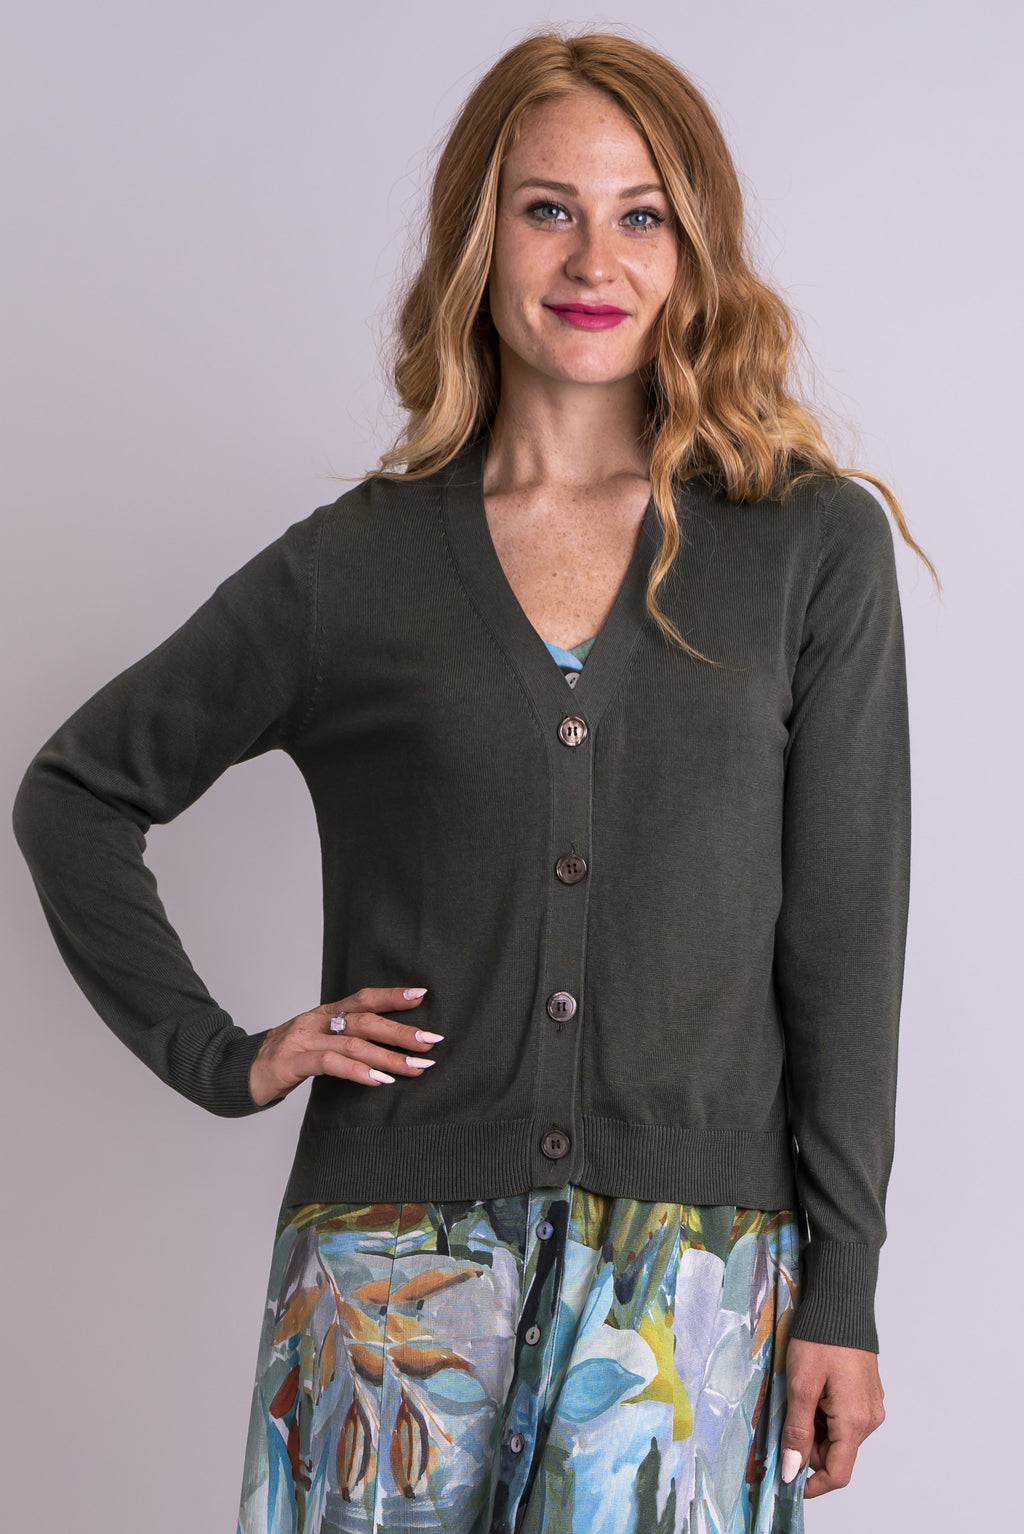 Jessica Sweater, Khaki, Bamboo Cotton - Blue Sky Clothing Co